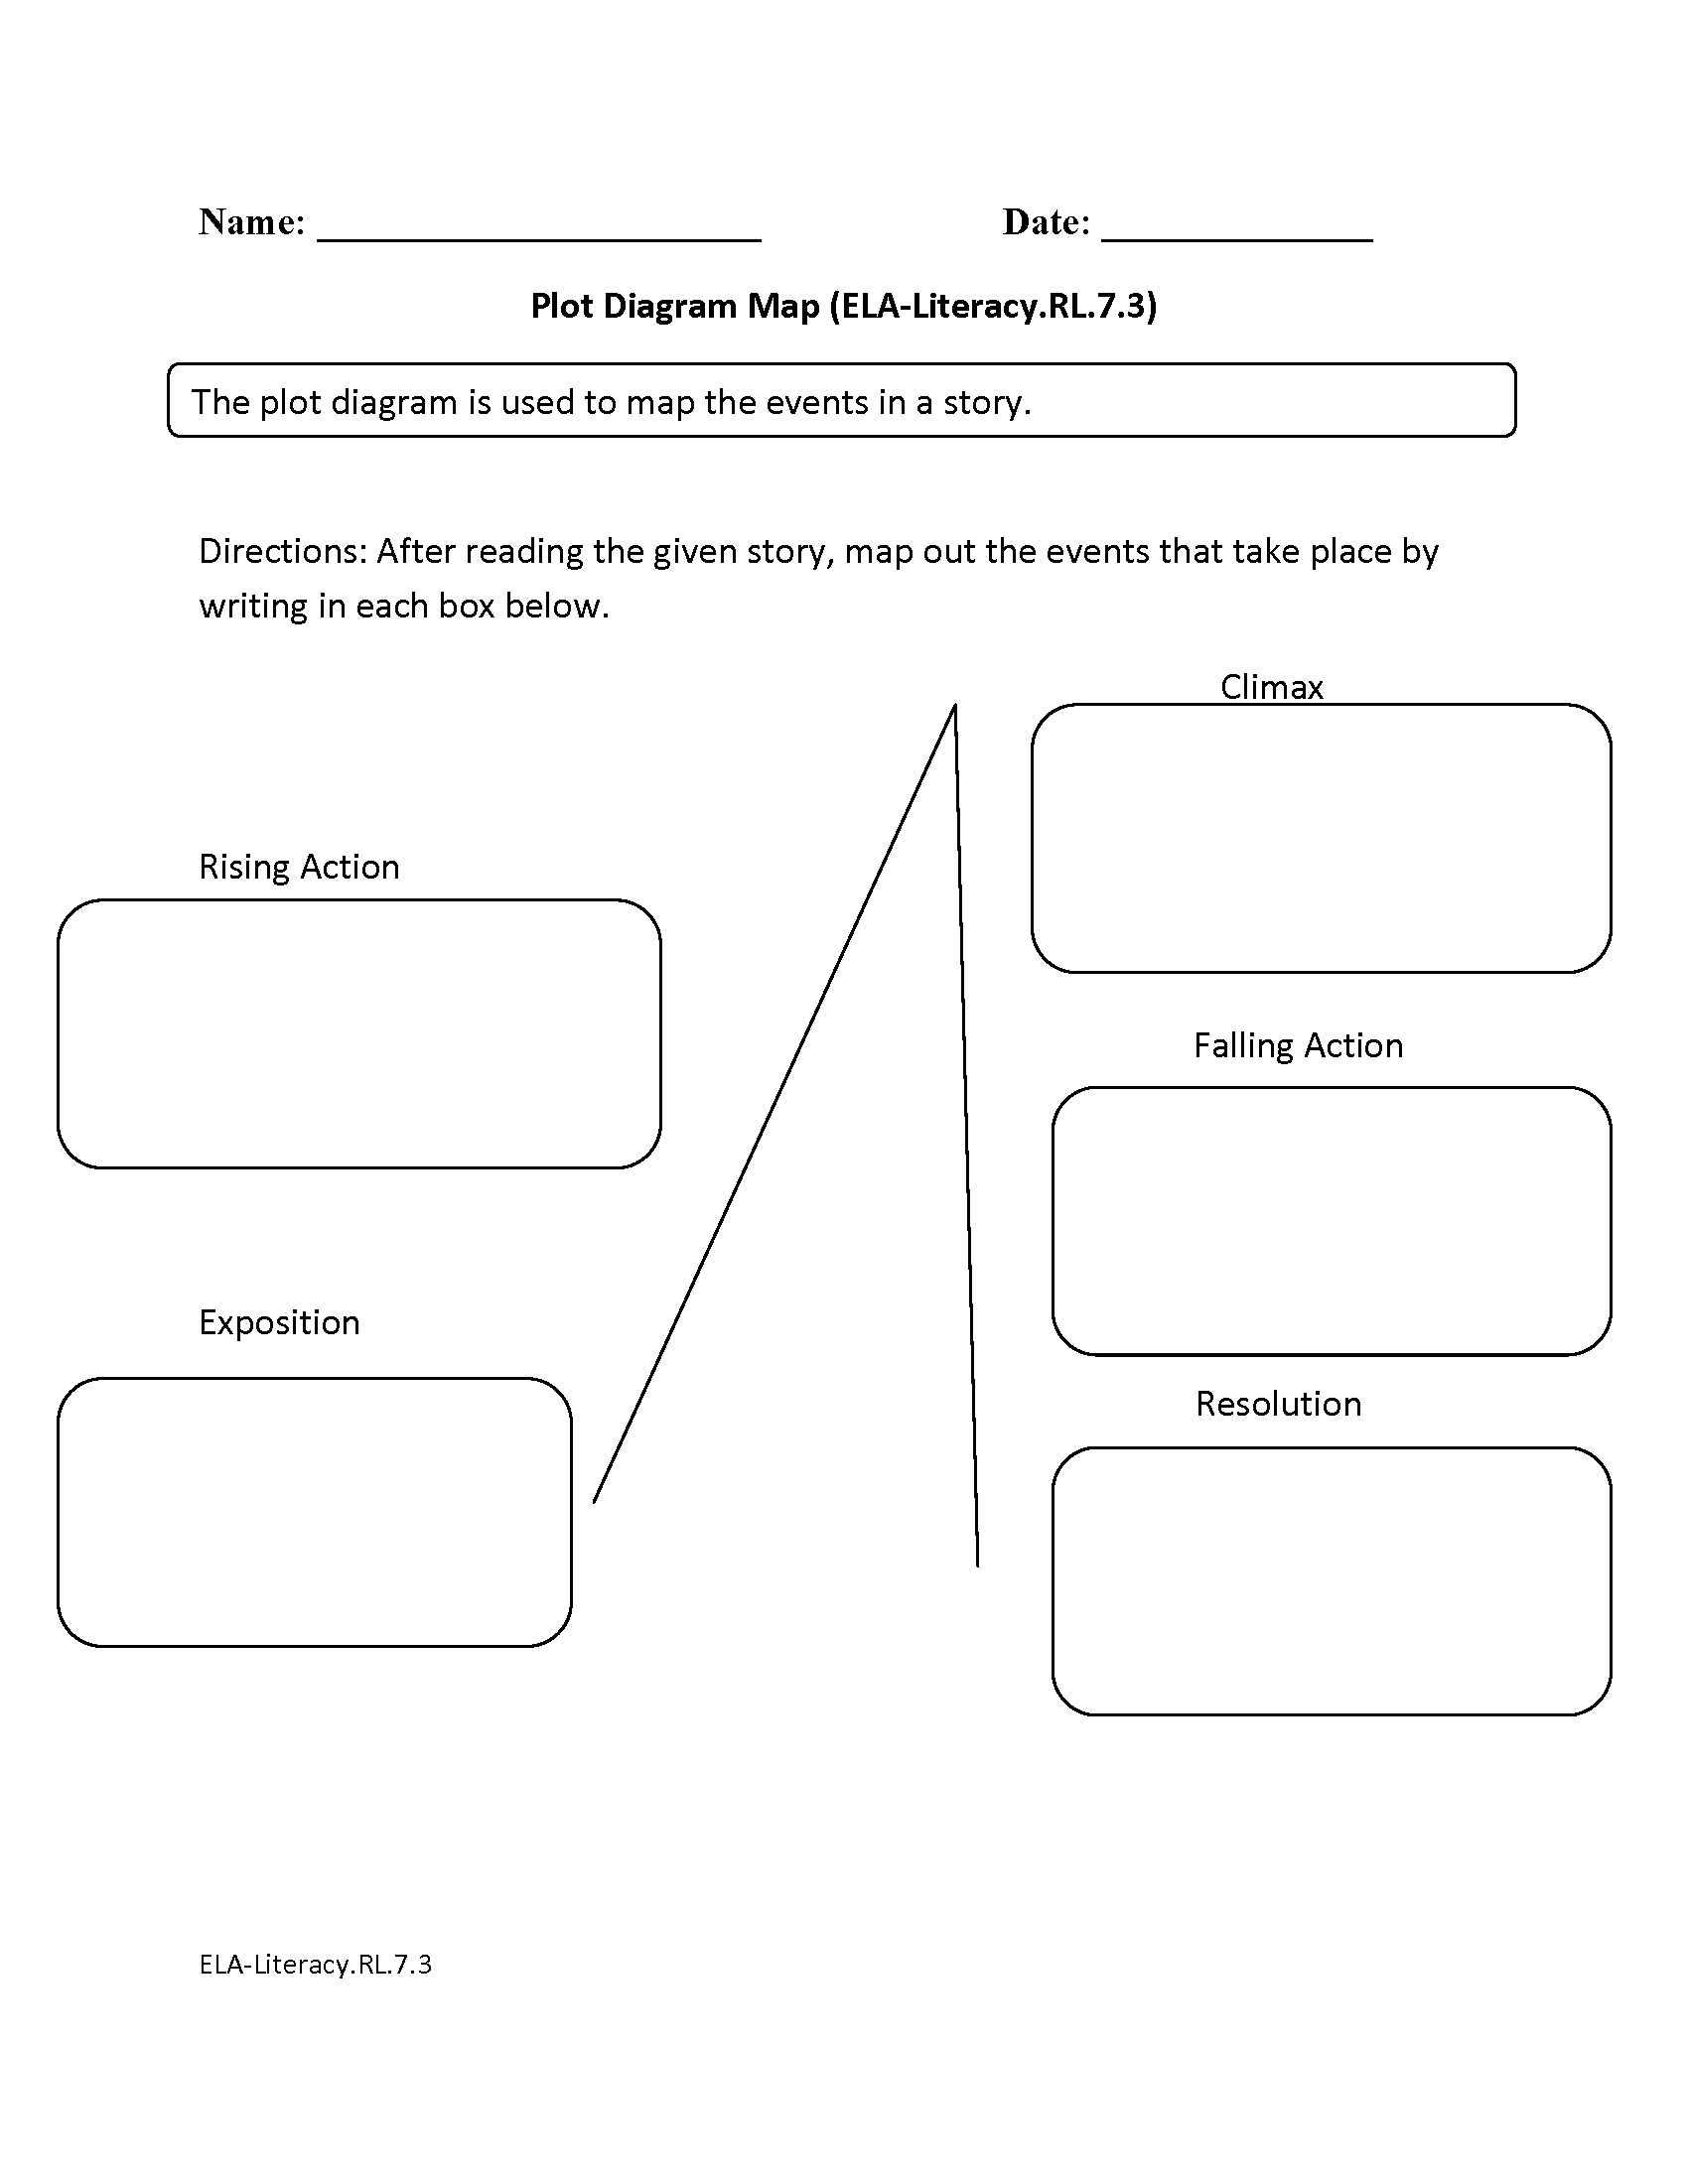 Plot Diagram Map Ela Literacy Rl 7 3 Reading Literature Worksheet